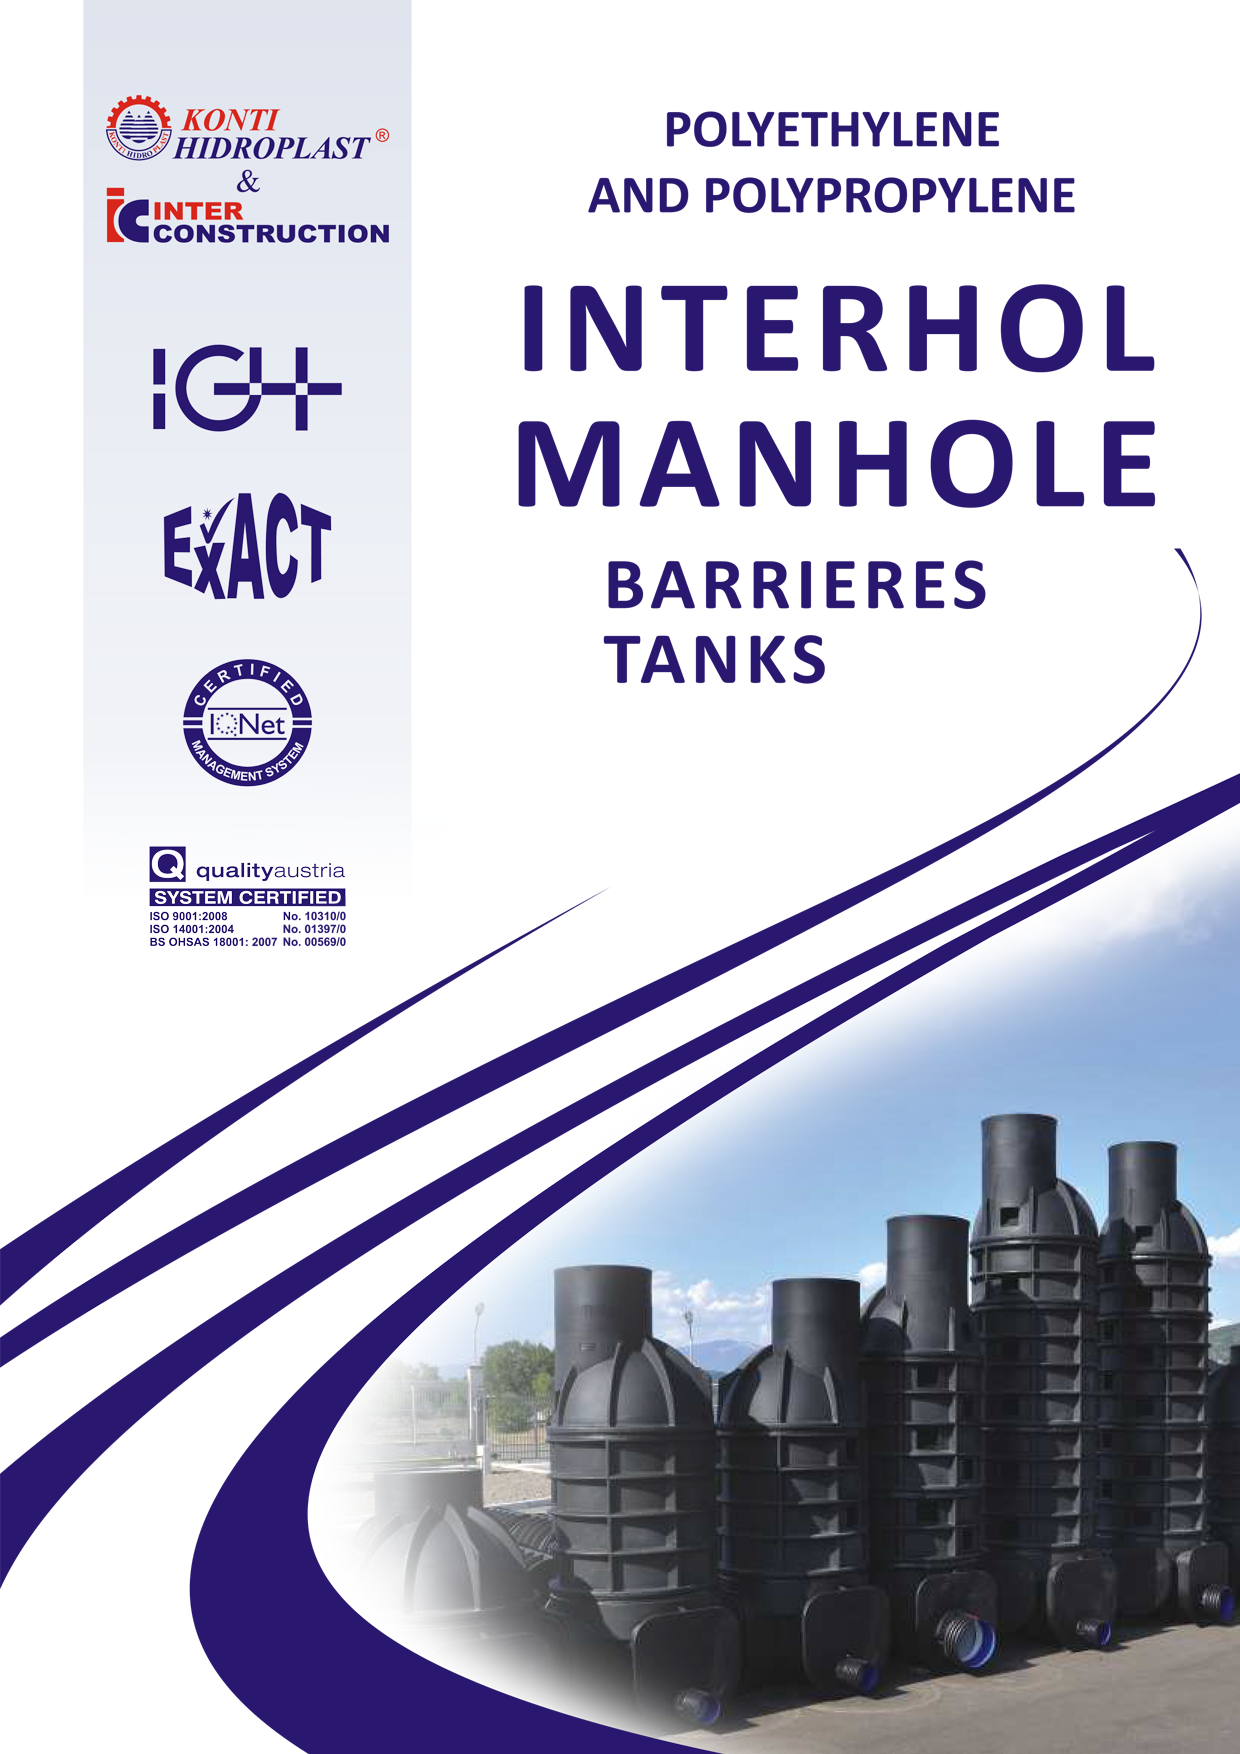 katalog interhol sahti inter construction каталог интерхол шахти интер констракшн brochure inter construction interhol manholes